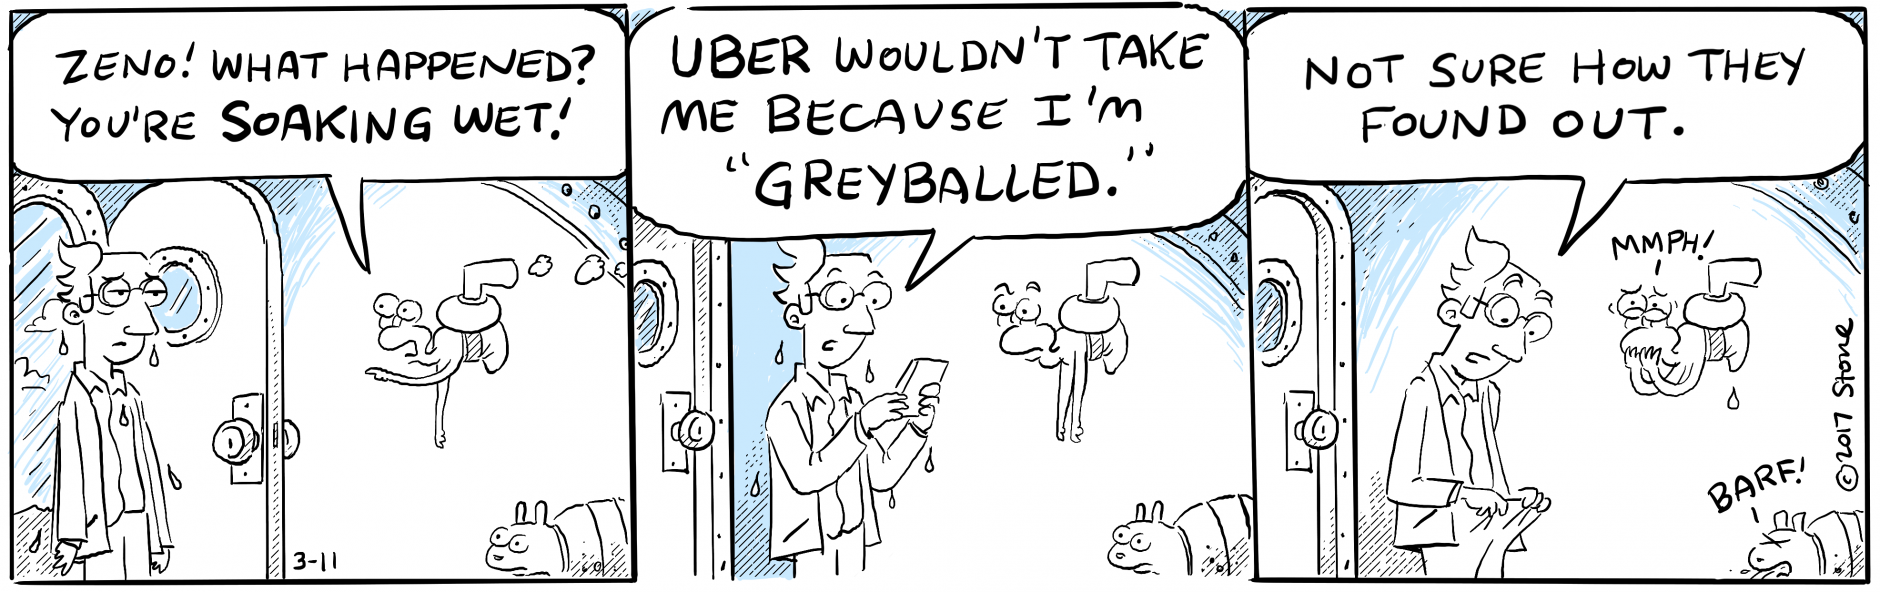 Hey, it can happen to anyone. @Uber #Greyball